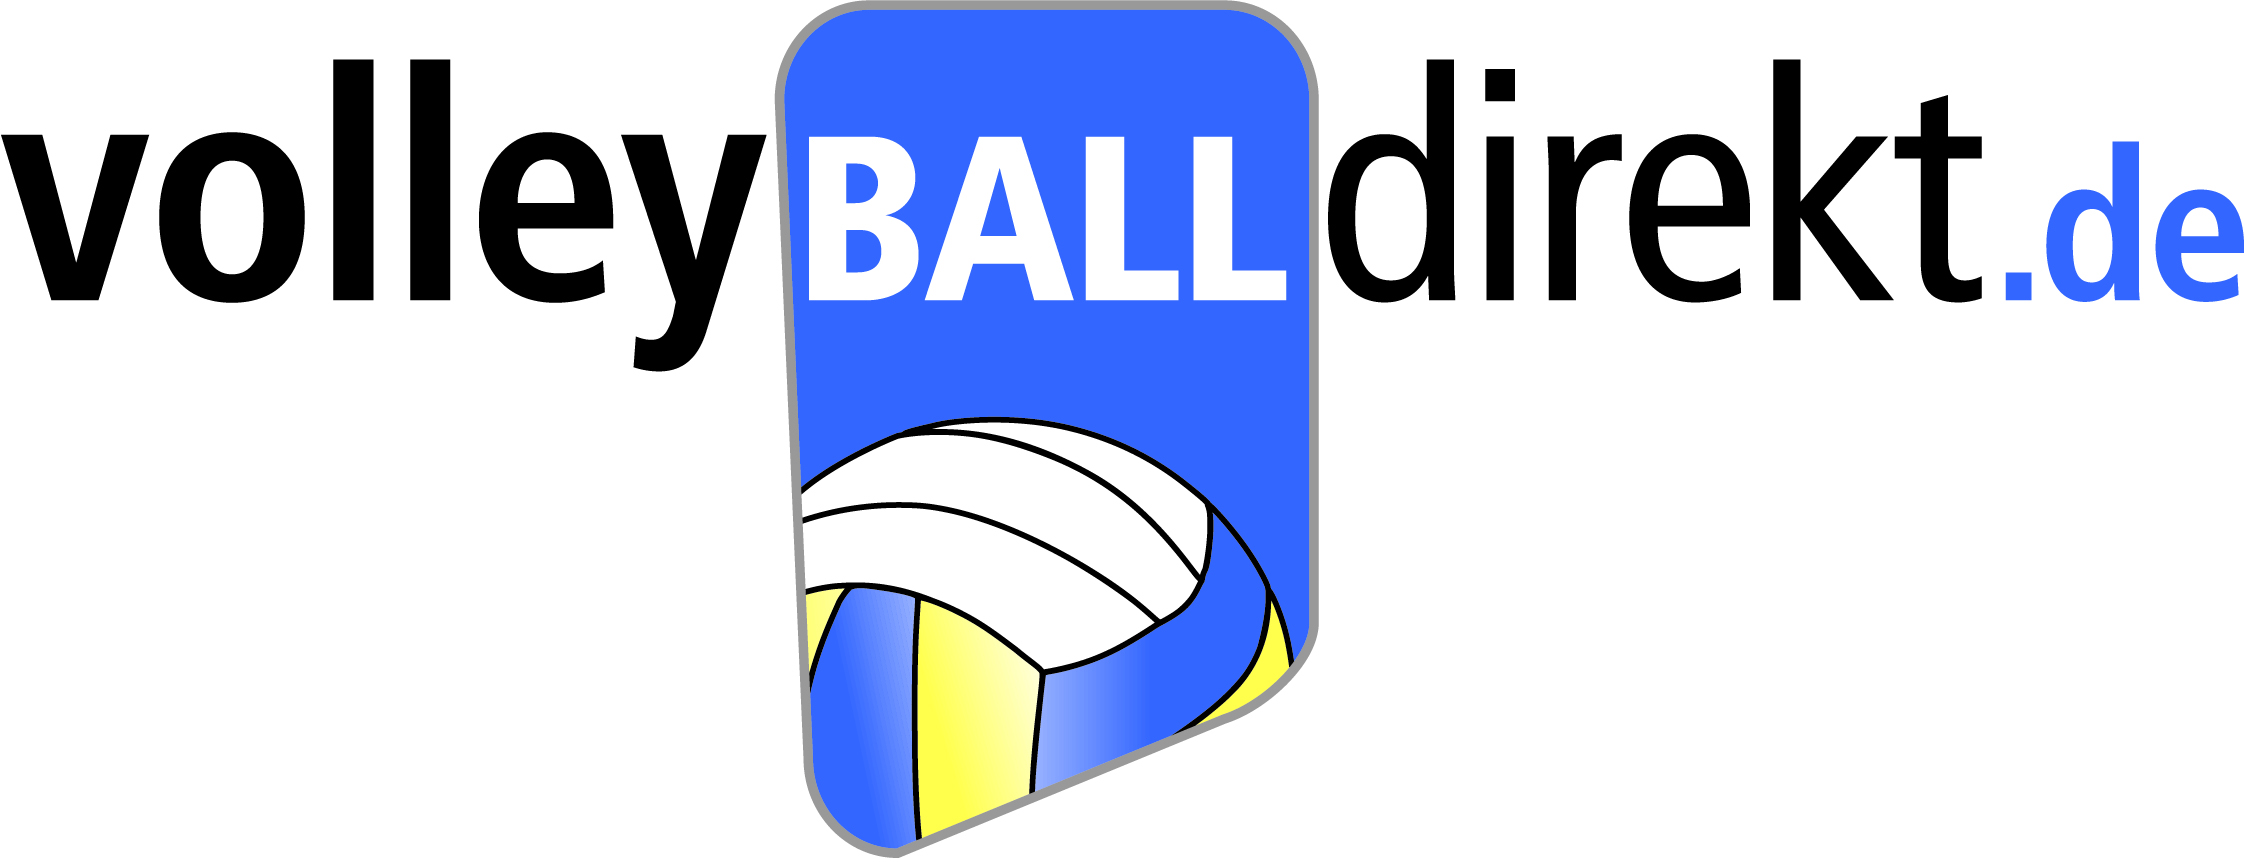 volleyballdirekt.de